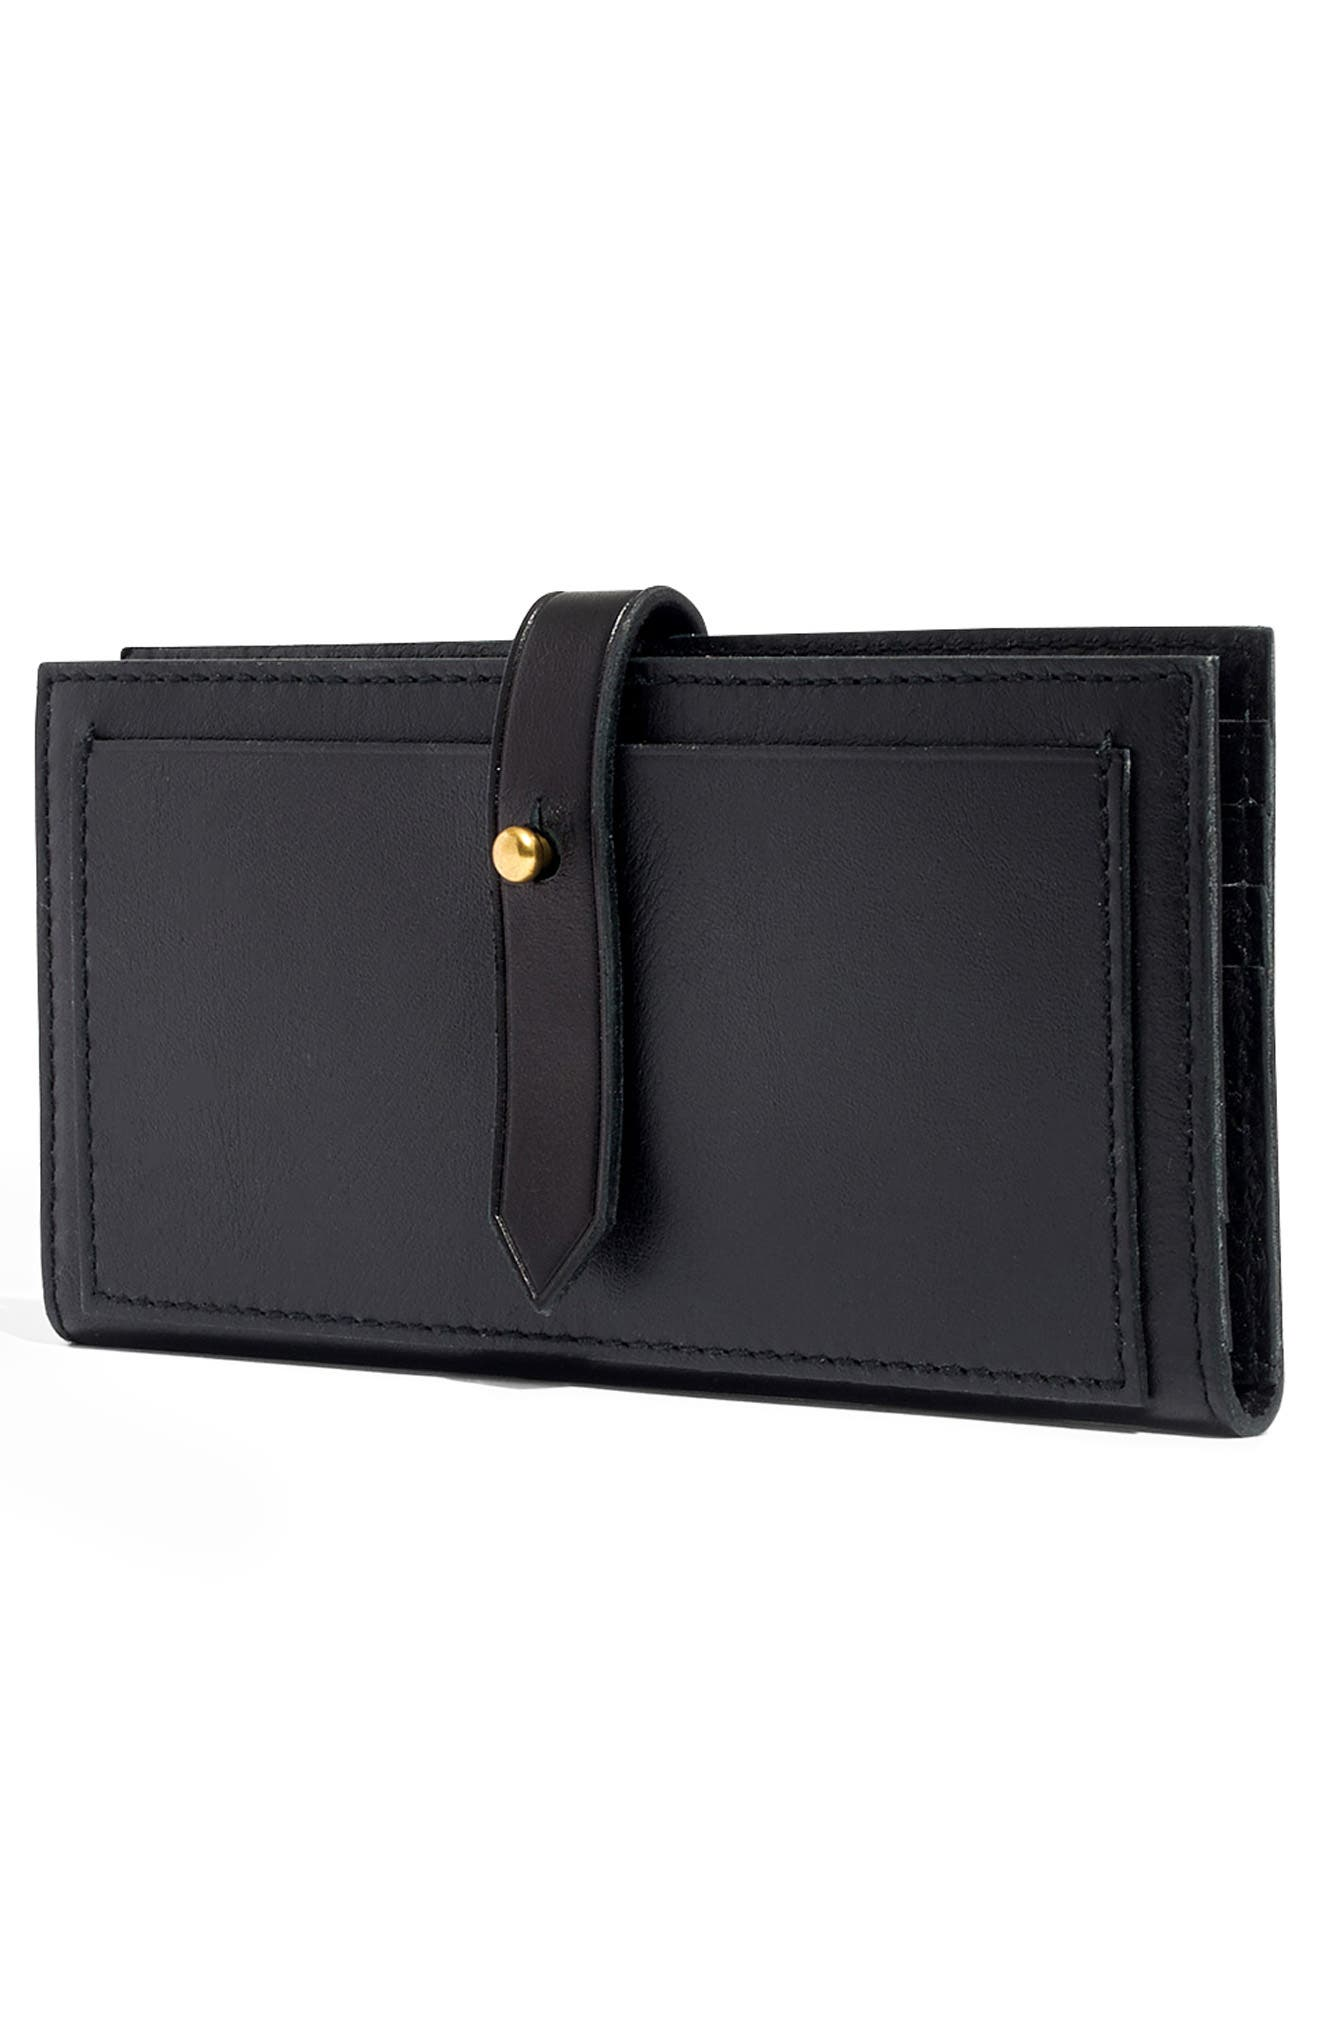 MADEWELL, New Post Leather Wallet, Alternate thumbnail 3, color, TRUE BLACK